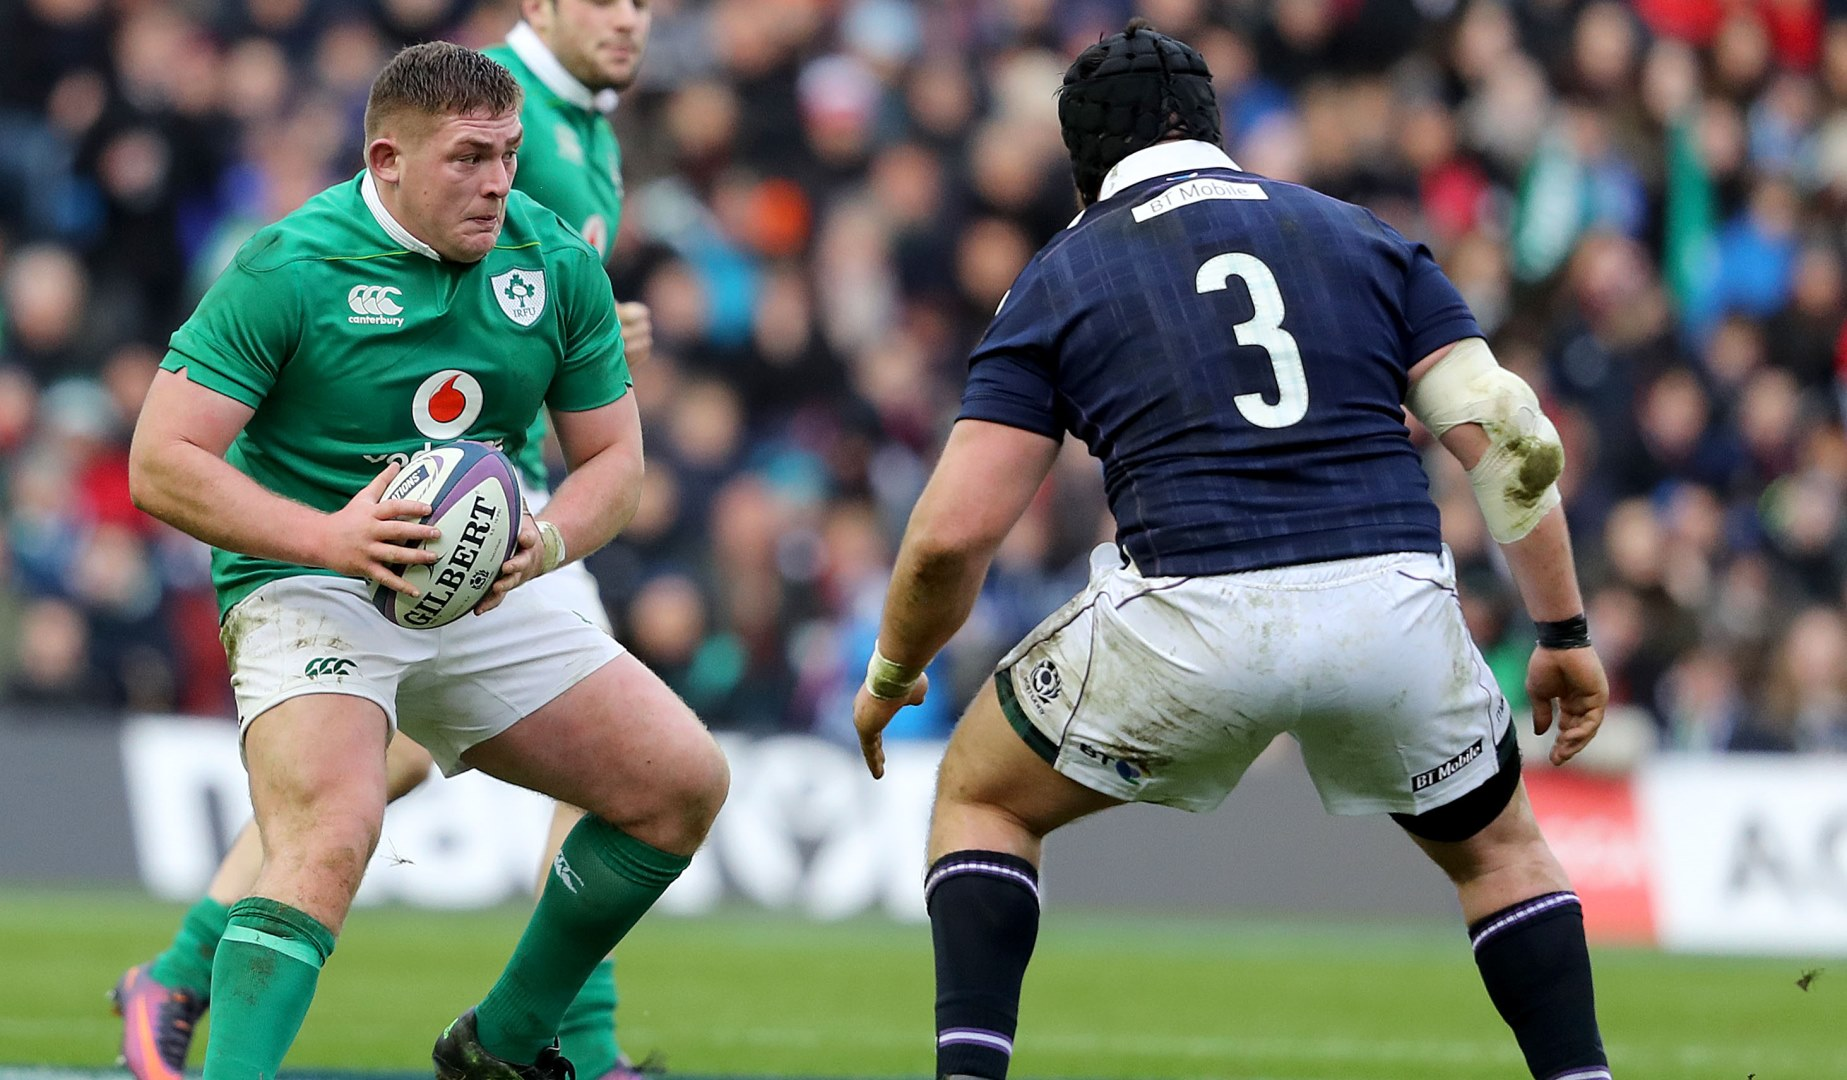 LionsWatch: Who could become a tighthead prop idol for the Lions?